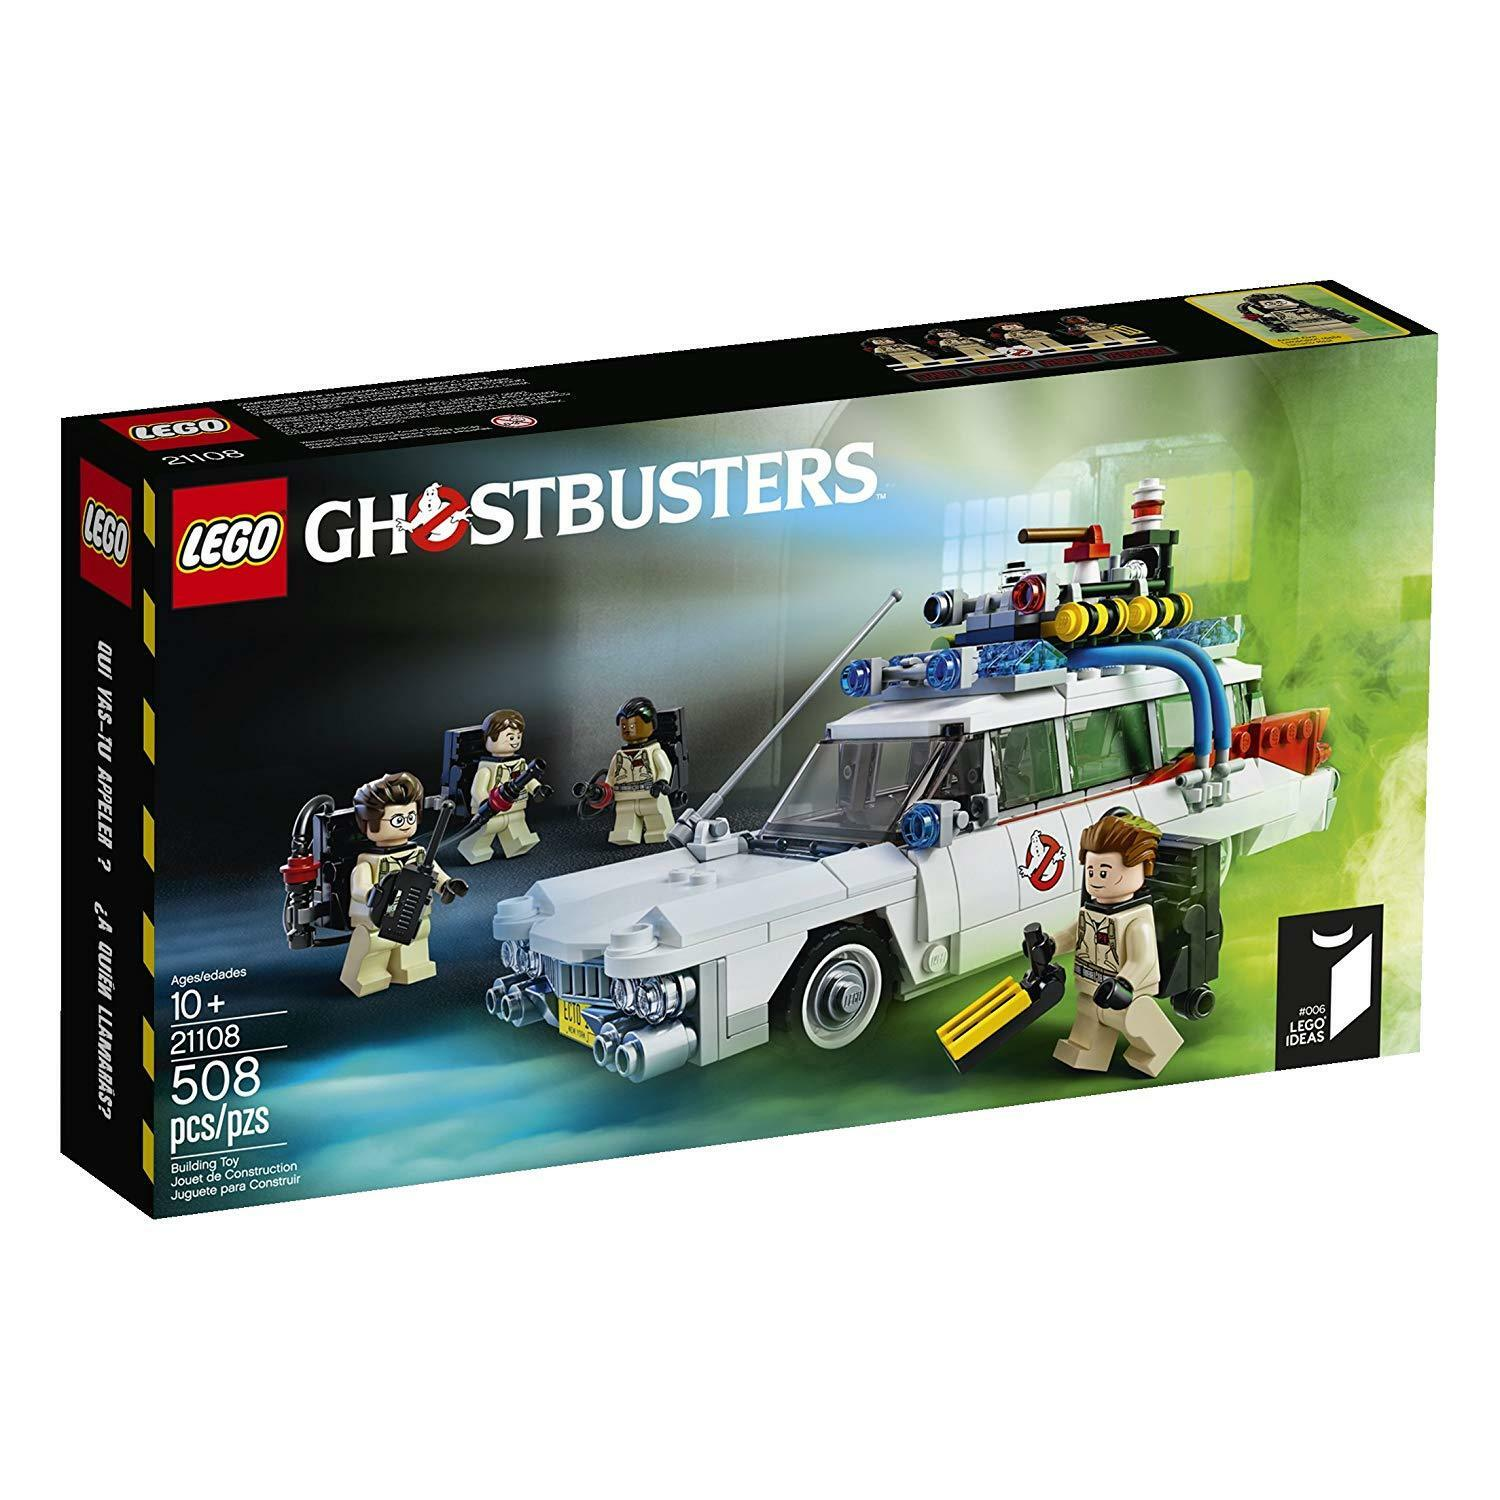 Lego Ideas 21108 Ghostbusters Ecto-1 Verpackung 1B